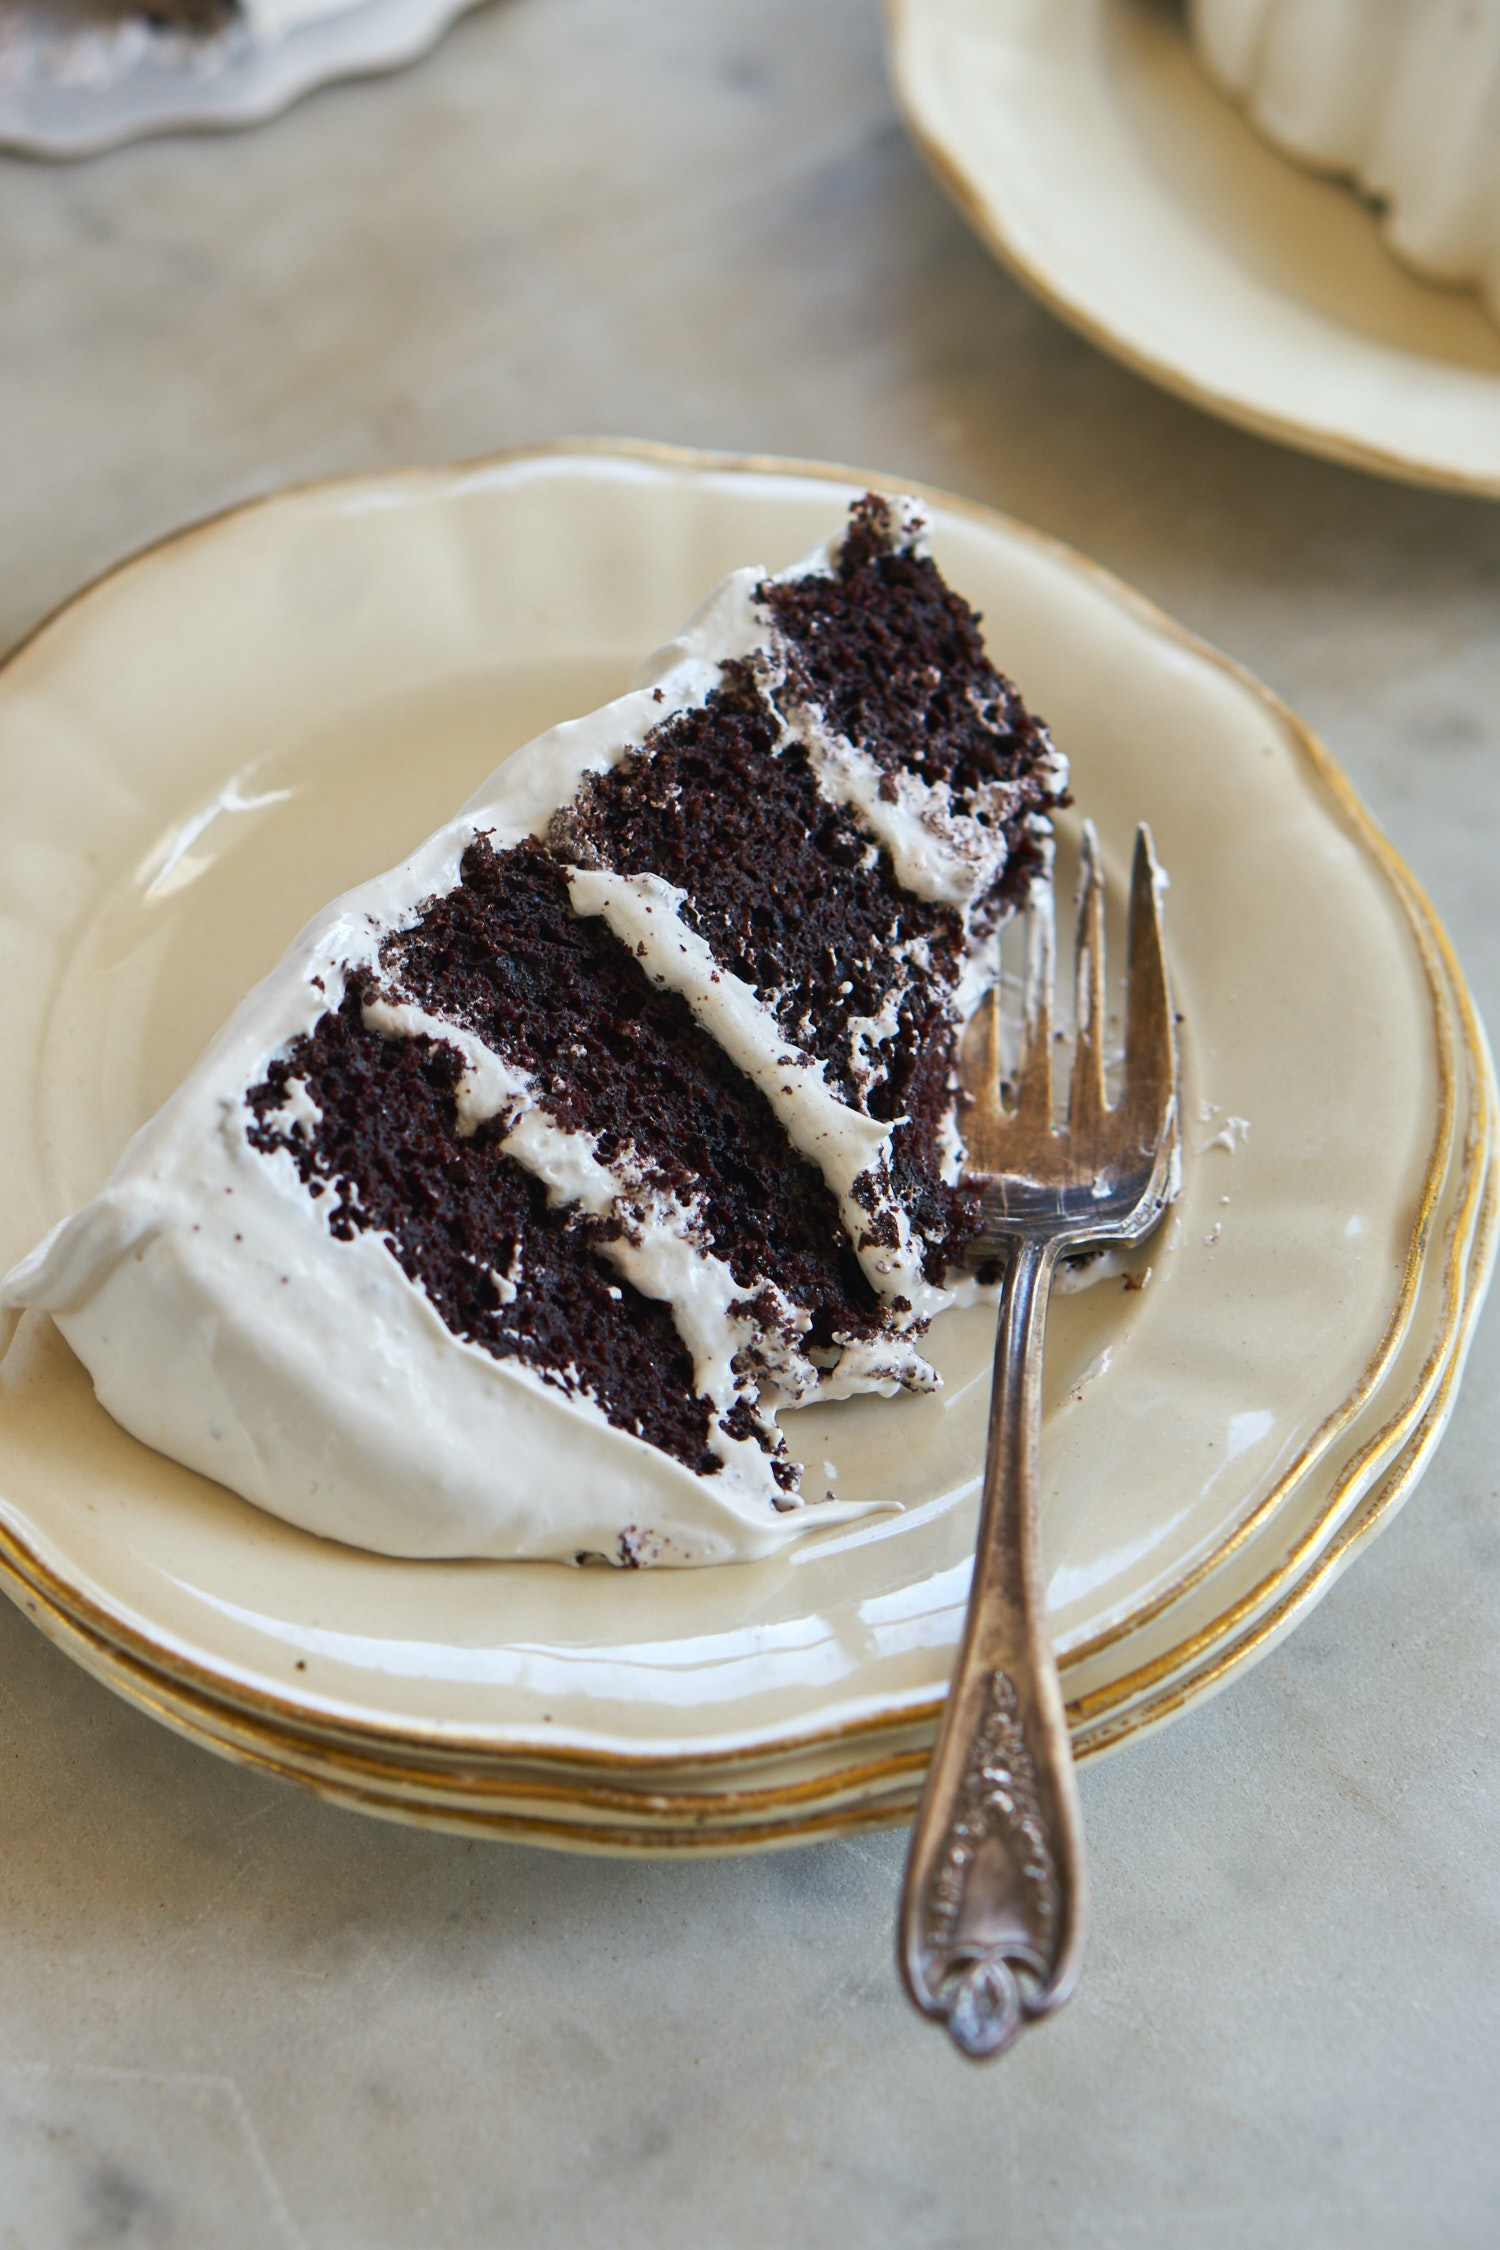 Violet Bakery Chocolate Devils Food Cake